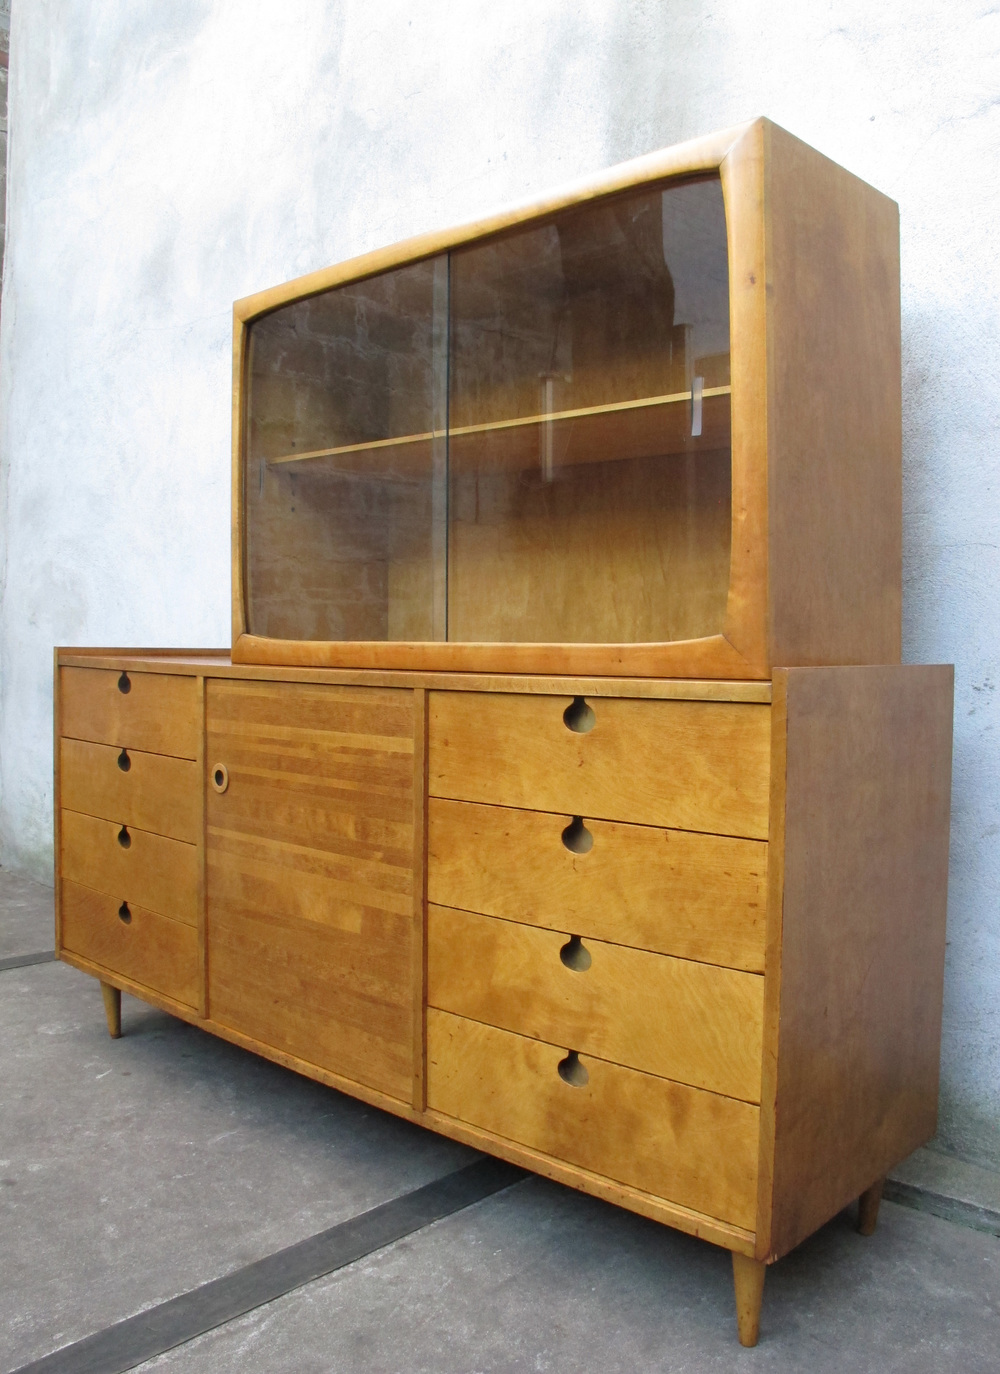 SWEDISH MODERN CREDENZA WITH CABINET BY EDMOND SPENCE